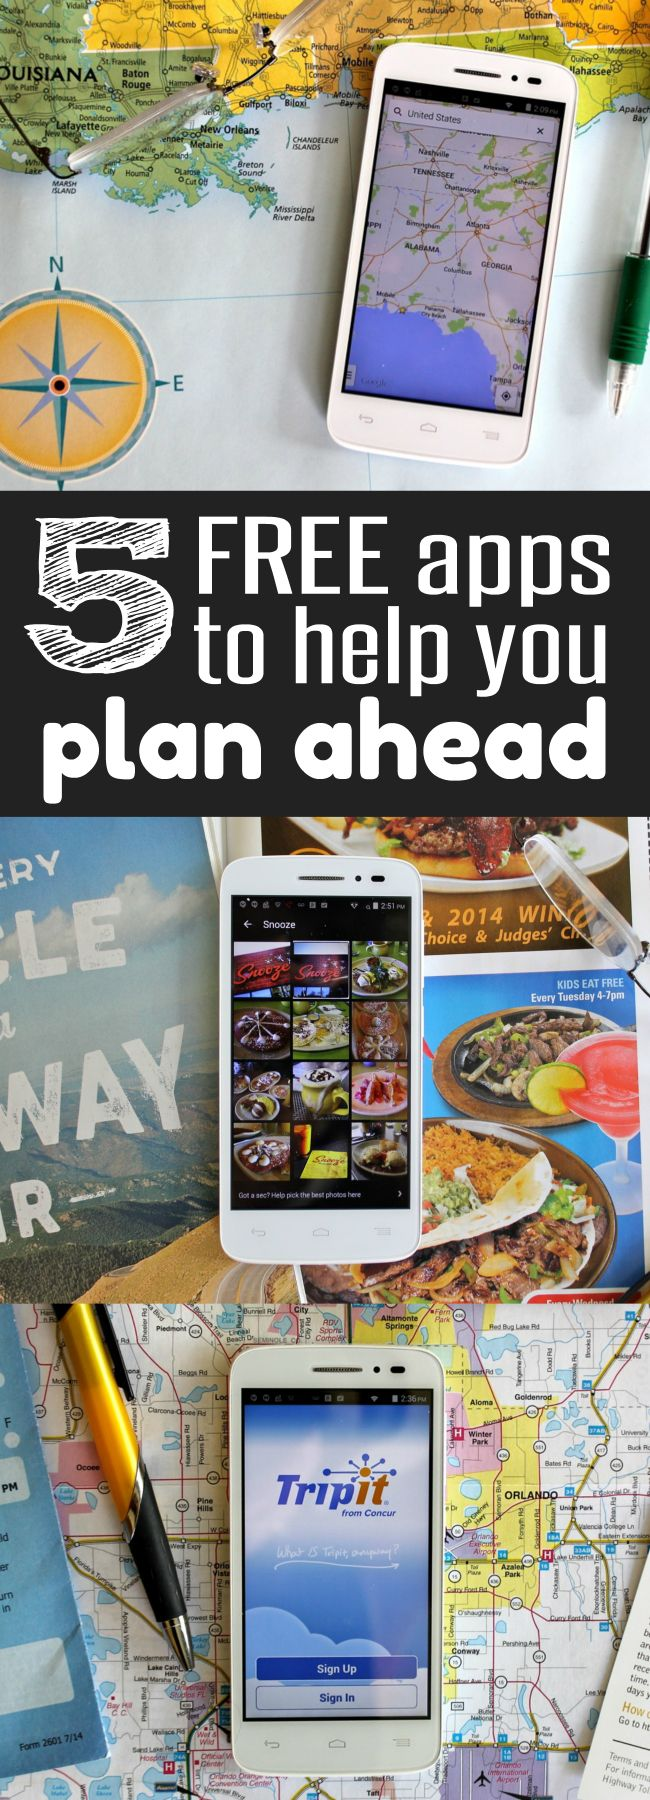 Need a FREE calendar, planning tools, weather alert system and PDA? These 5 Free apps will help you plan ahead and help you get organized! Tips from HappyandBlessed.com | Planner | Calendar for home or office | family and life organization